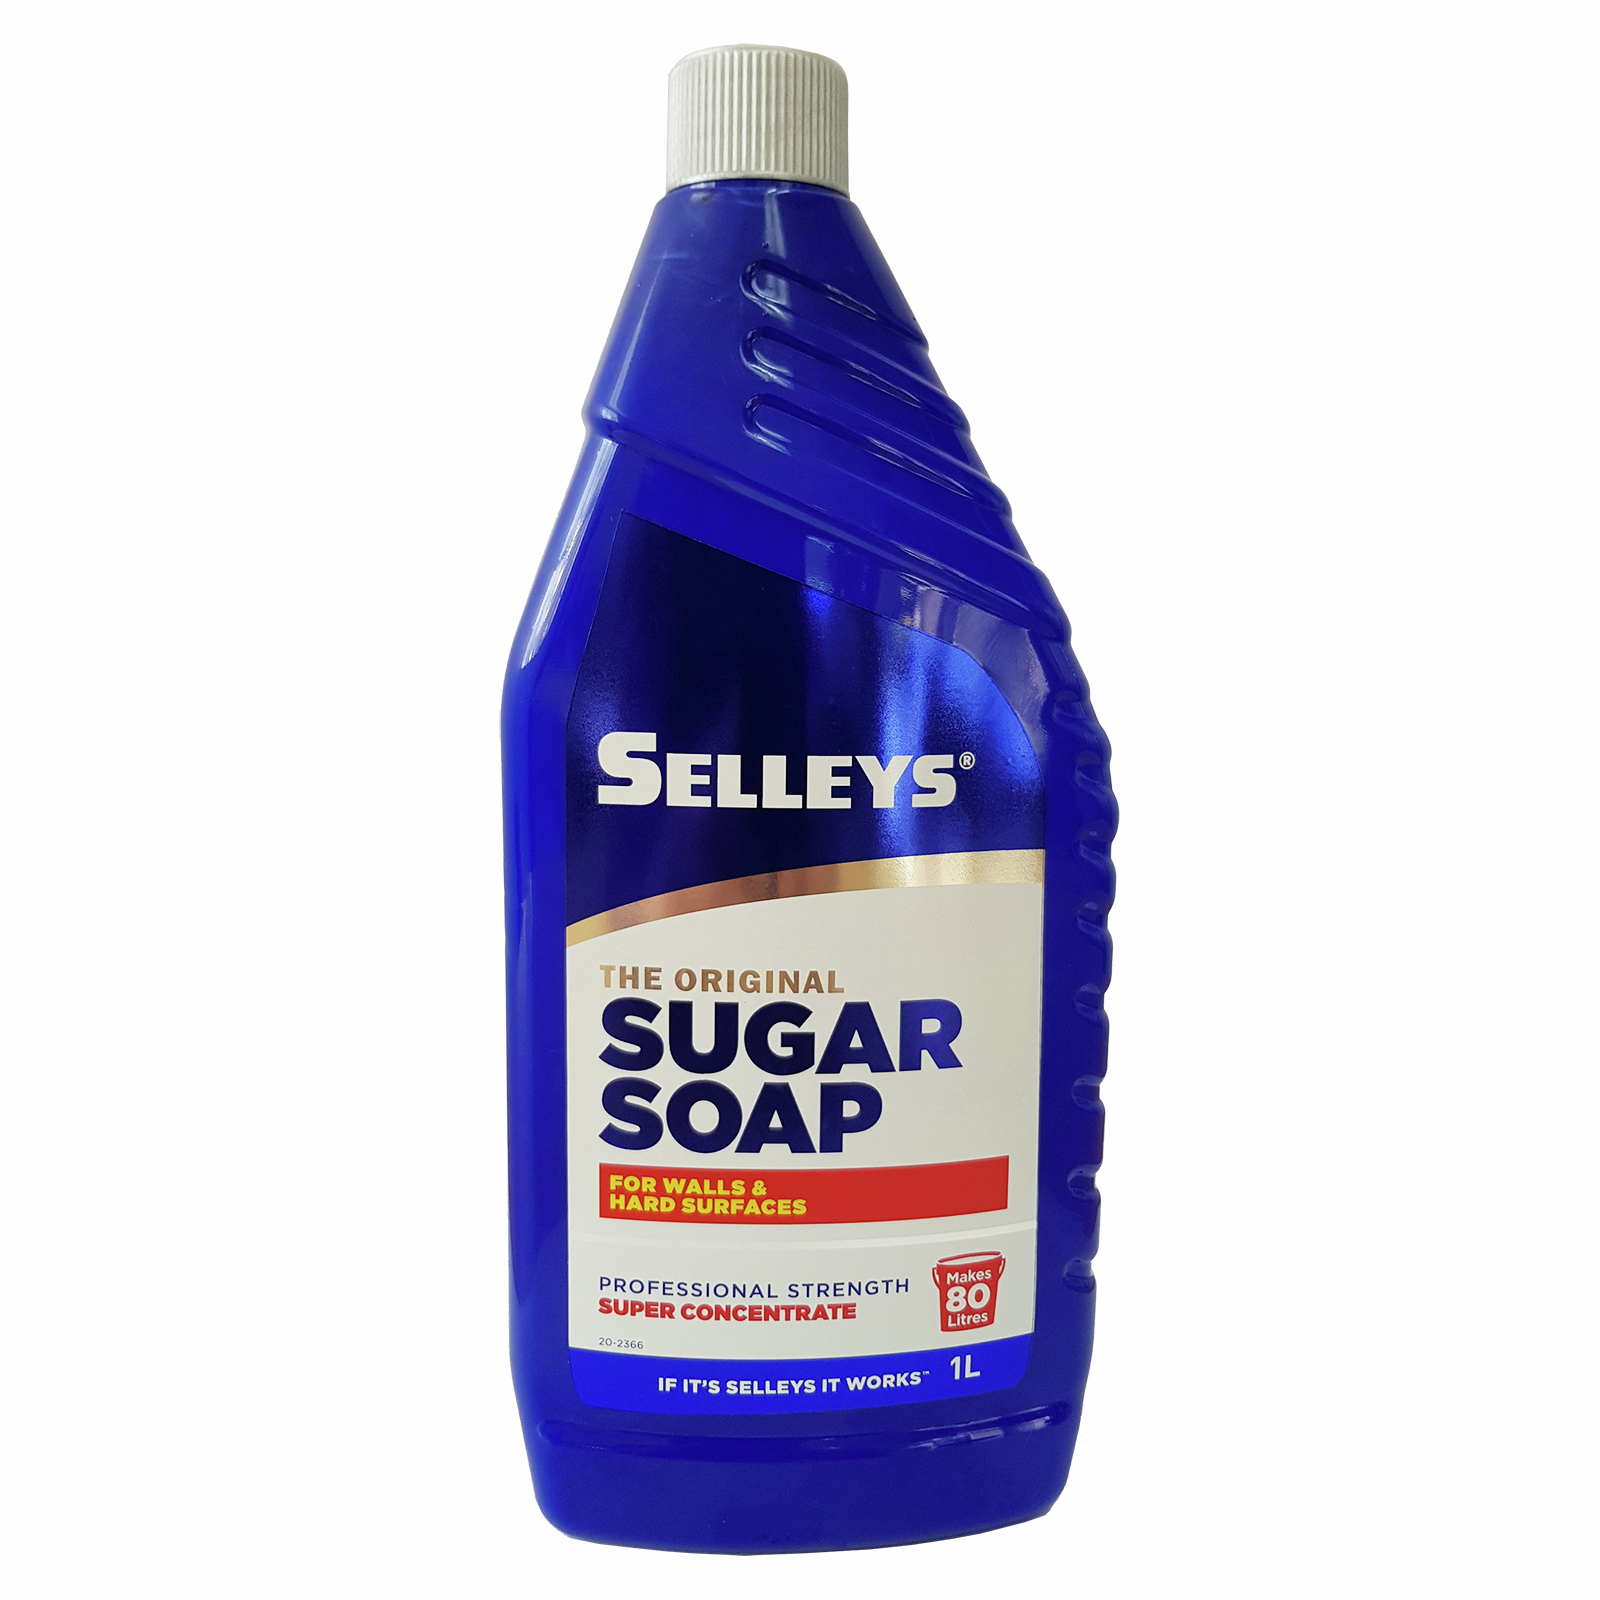 Selleys 1L Wall Surface Cleaner Super Concentrate Sugar Soap